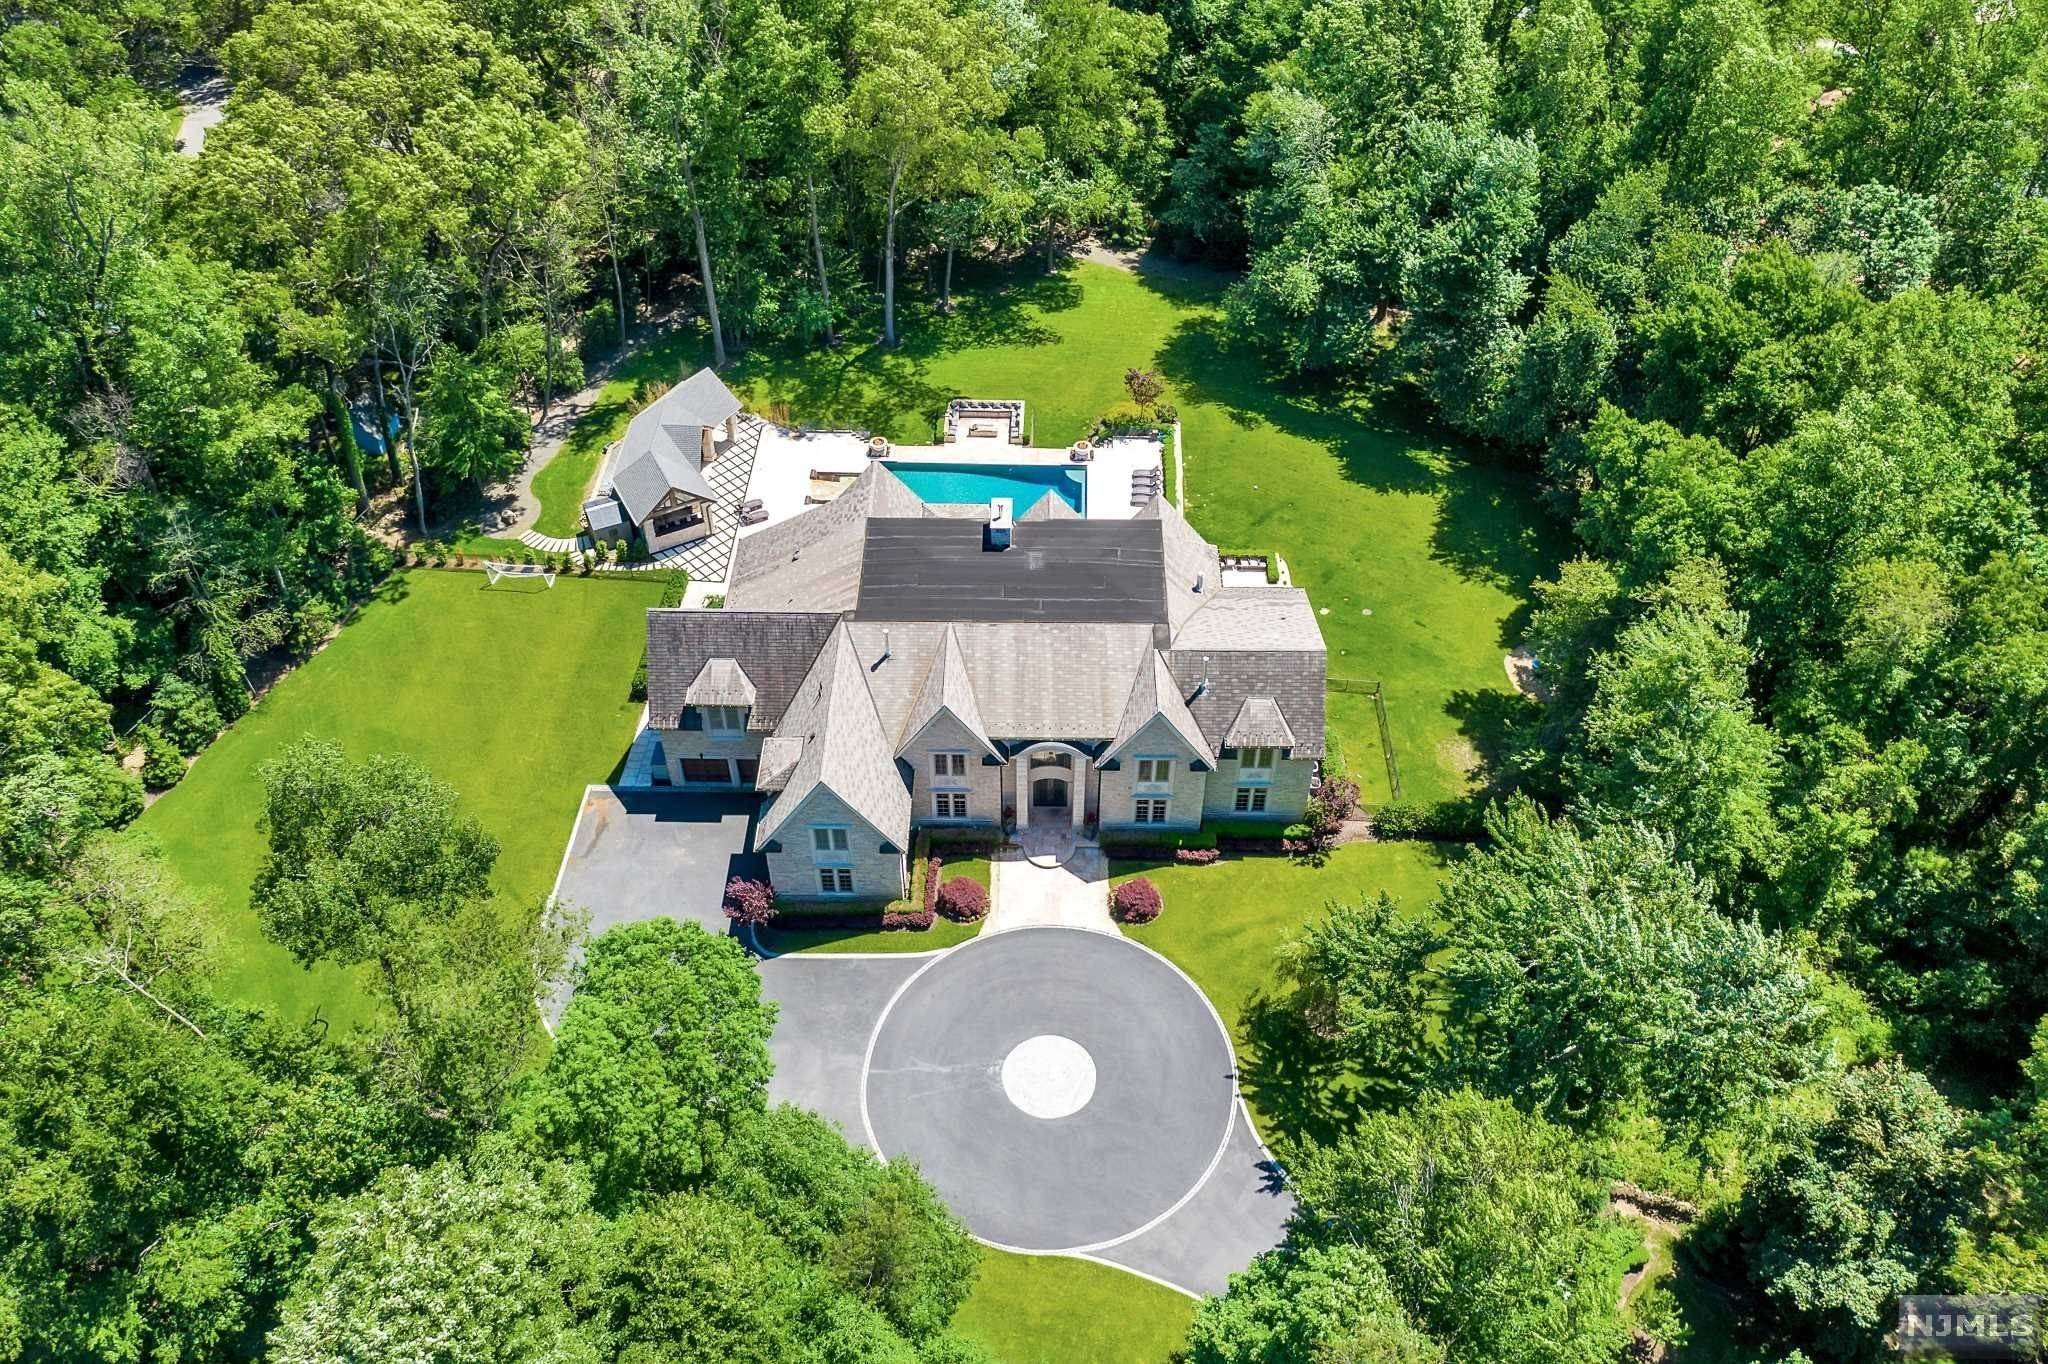 3. Single Family Home for Sale at 1 Scheffler Drive Saddle River, New Jersey, 07458 United States